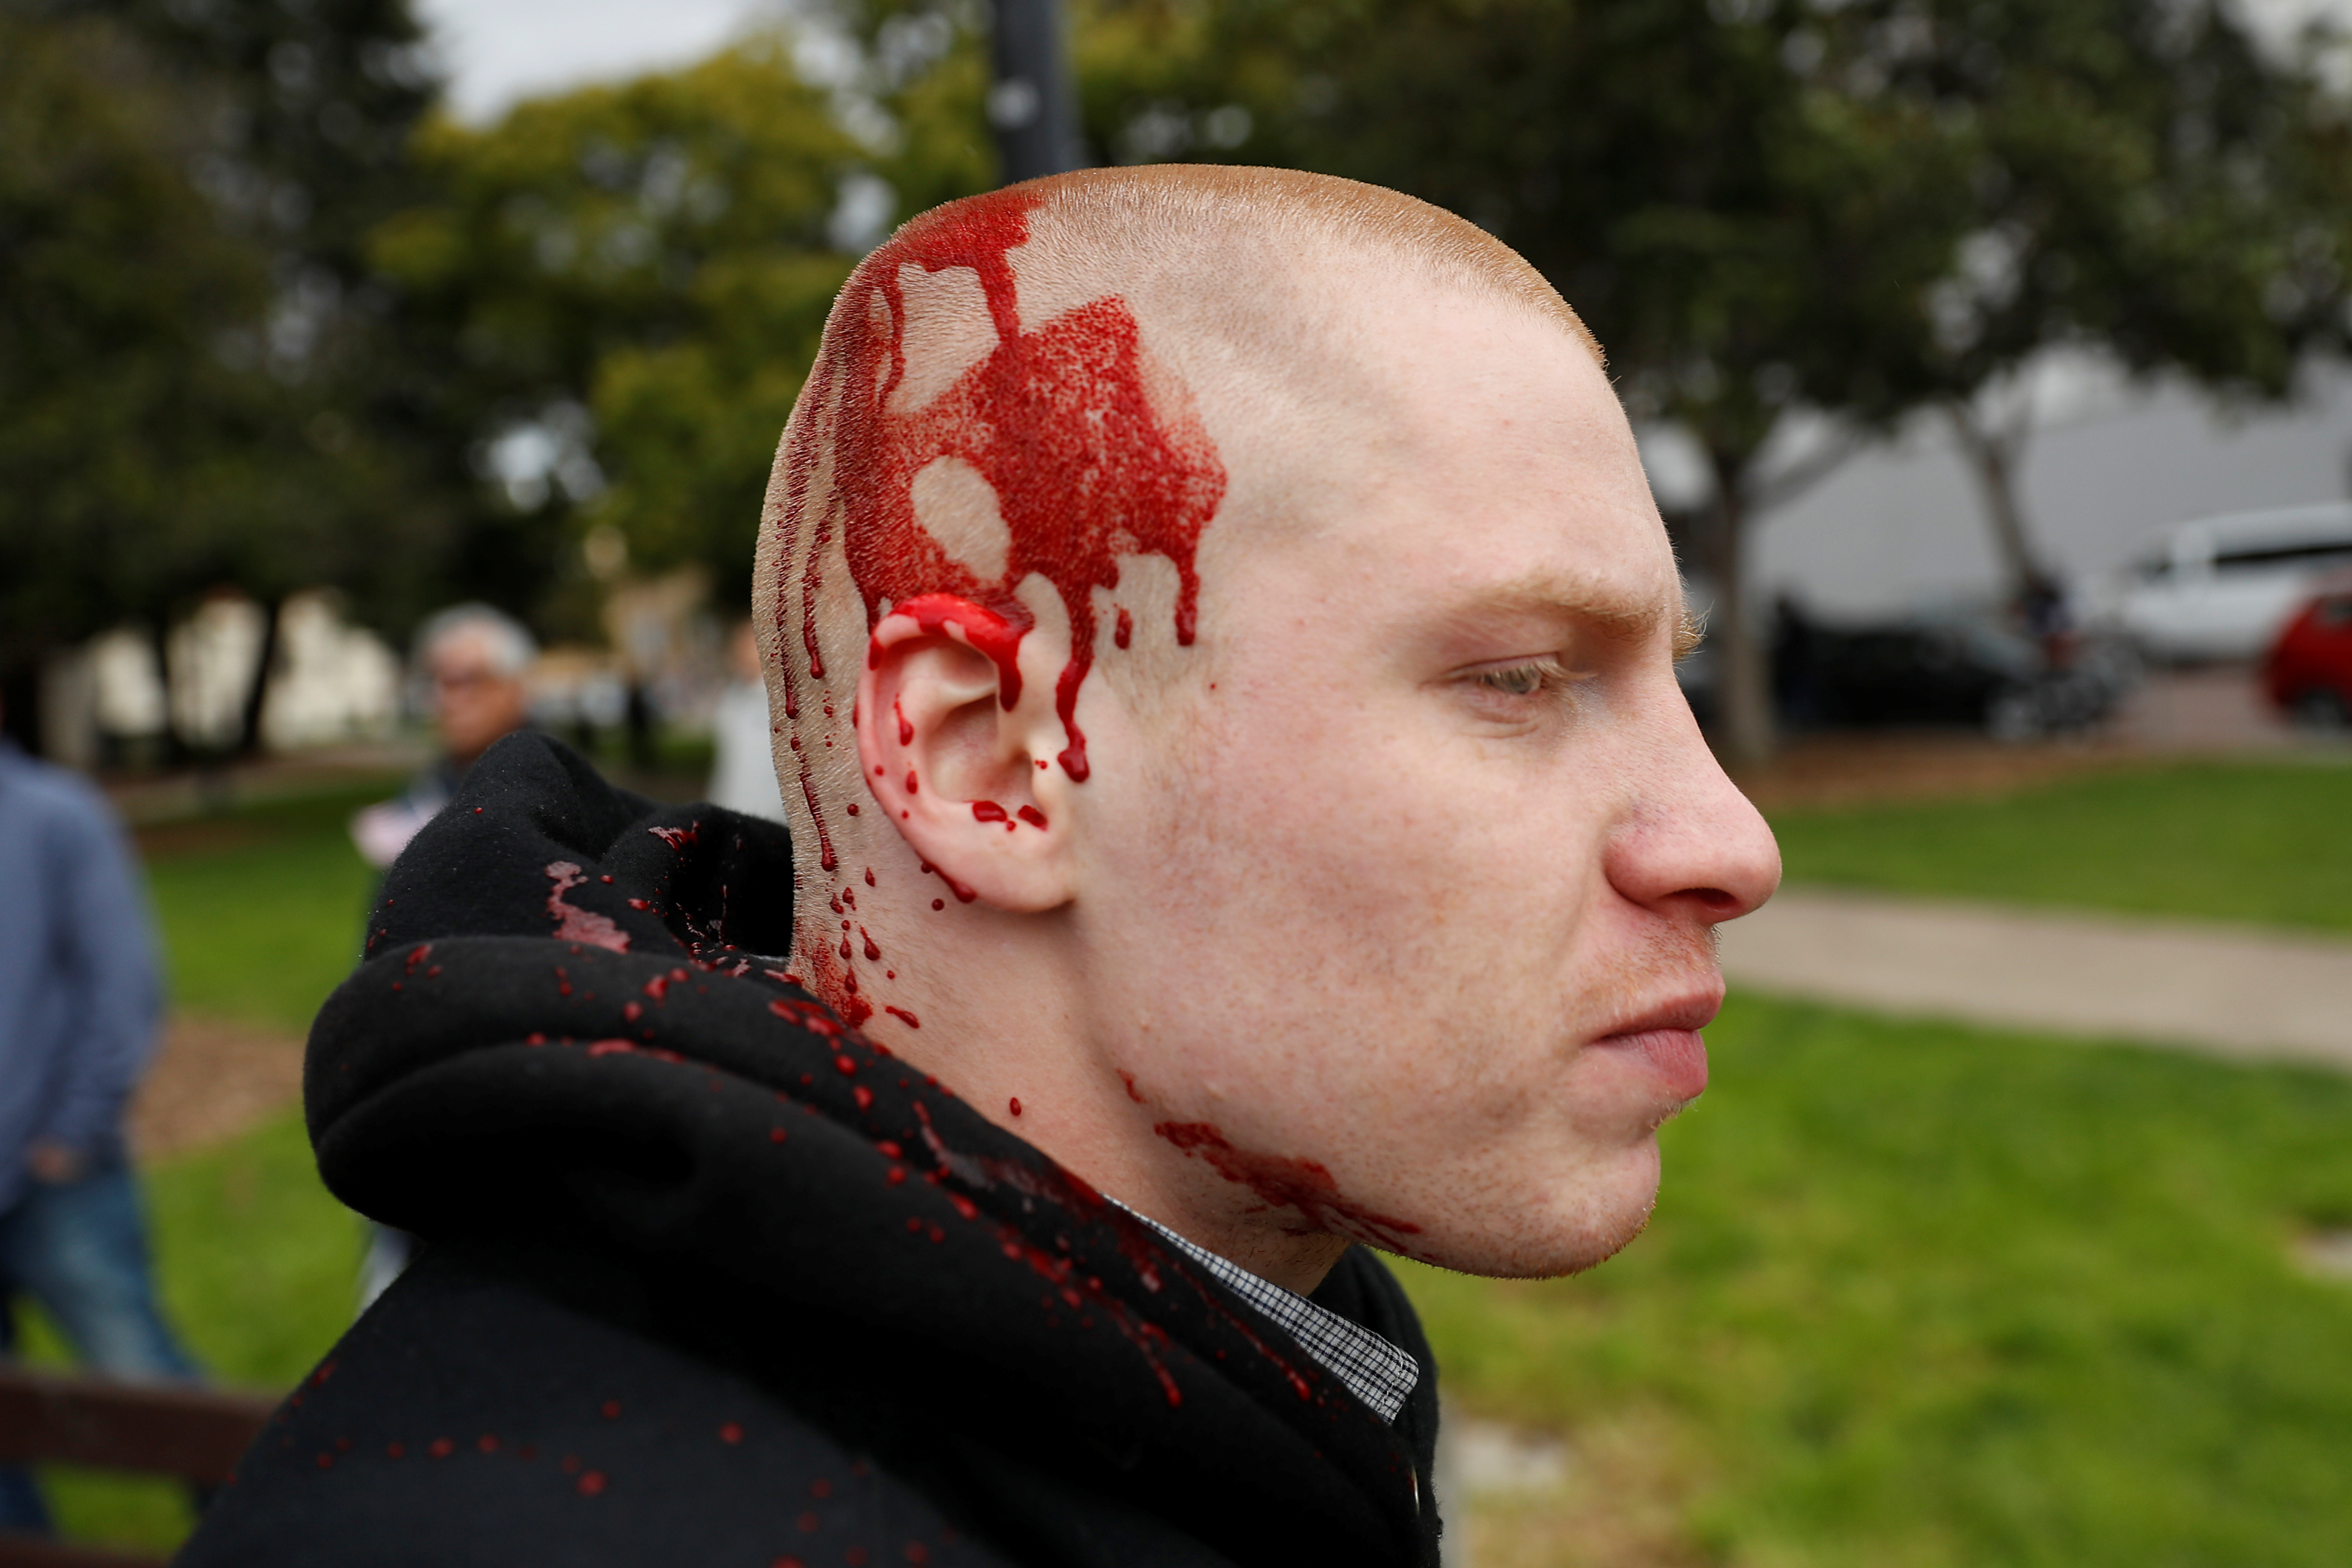 """An injured demonstrator walks away after a """"People 4 Trump"""" rally turned violent in Berkeley, California March 4, 2017"""